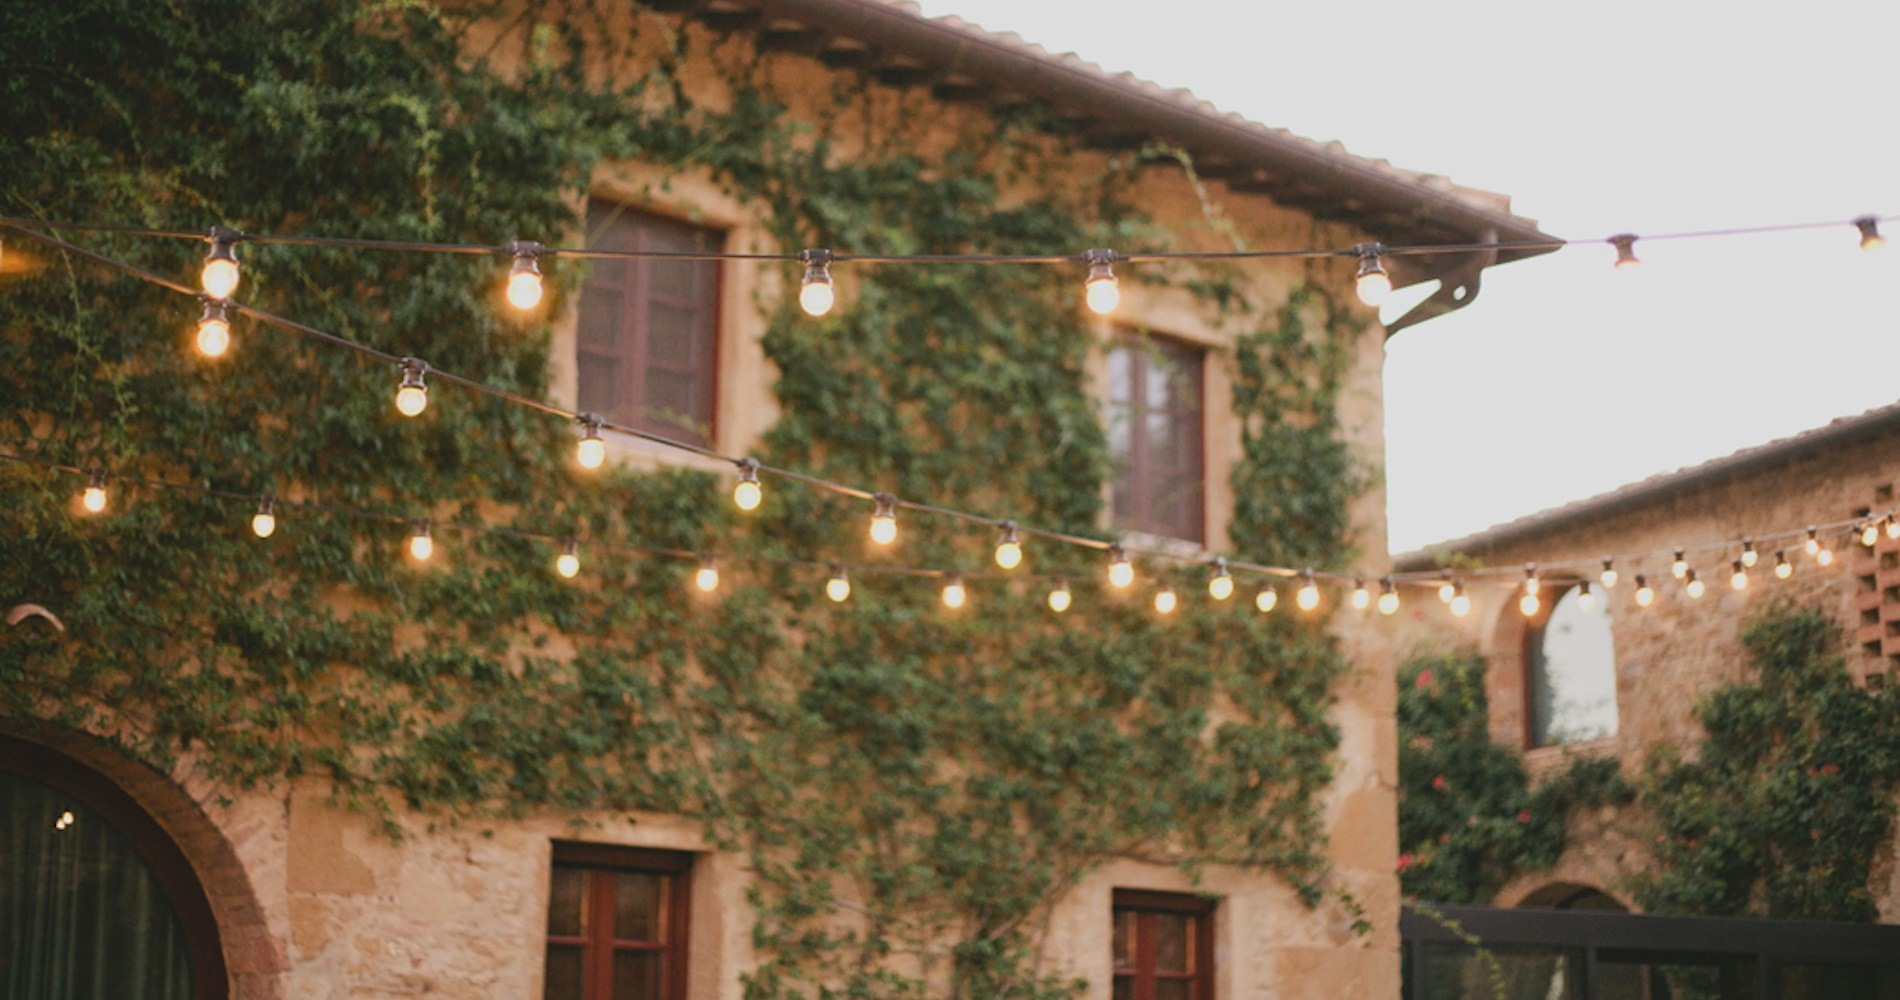 Wedding in Tuscany by Purewhite Photography and Chiara Sernesi 72